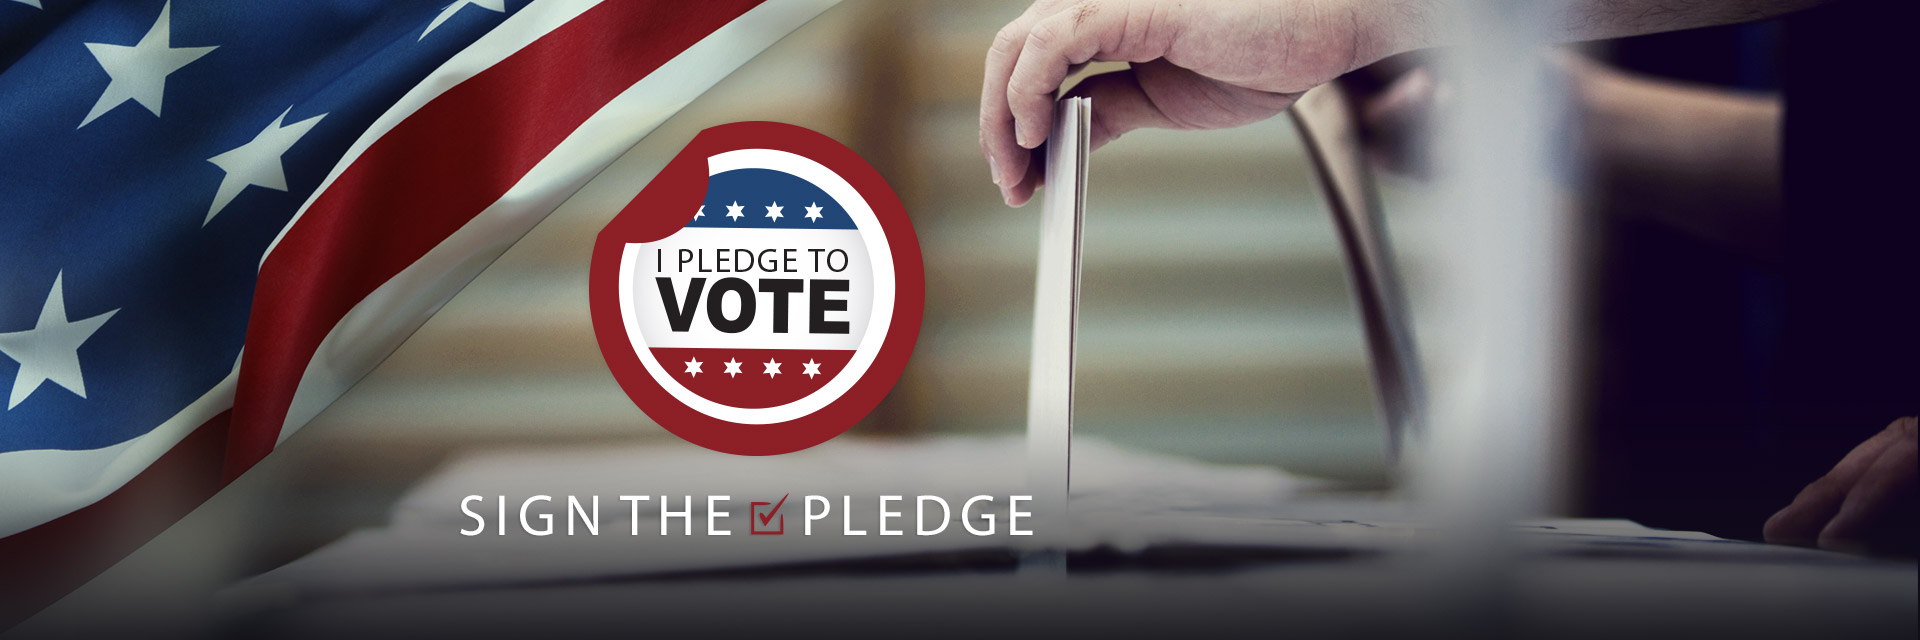 Pledge-To-Vote-Slider